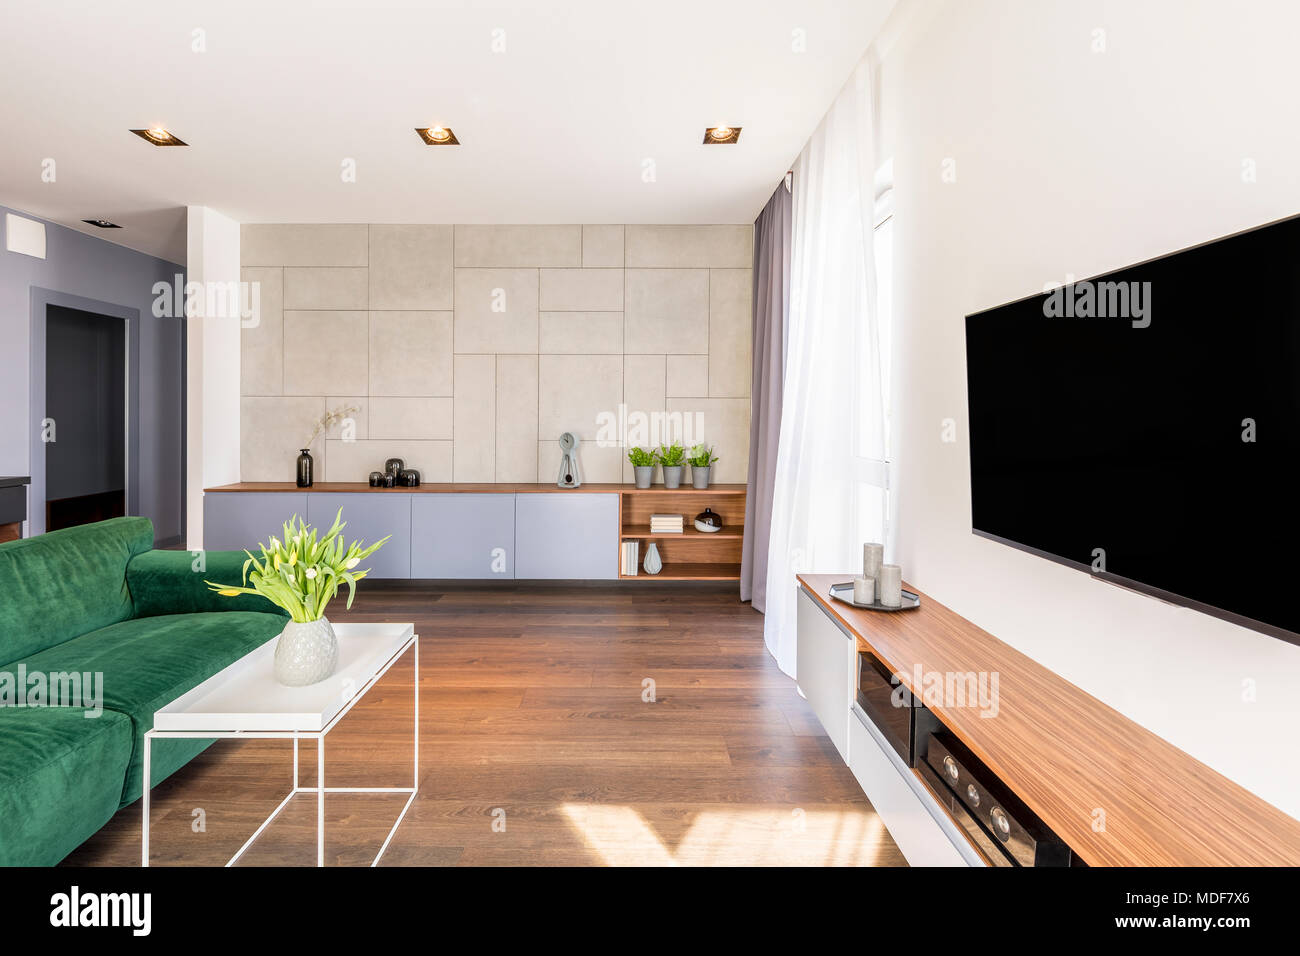 Large Television In Luxurious Living Room Interior With ...